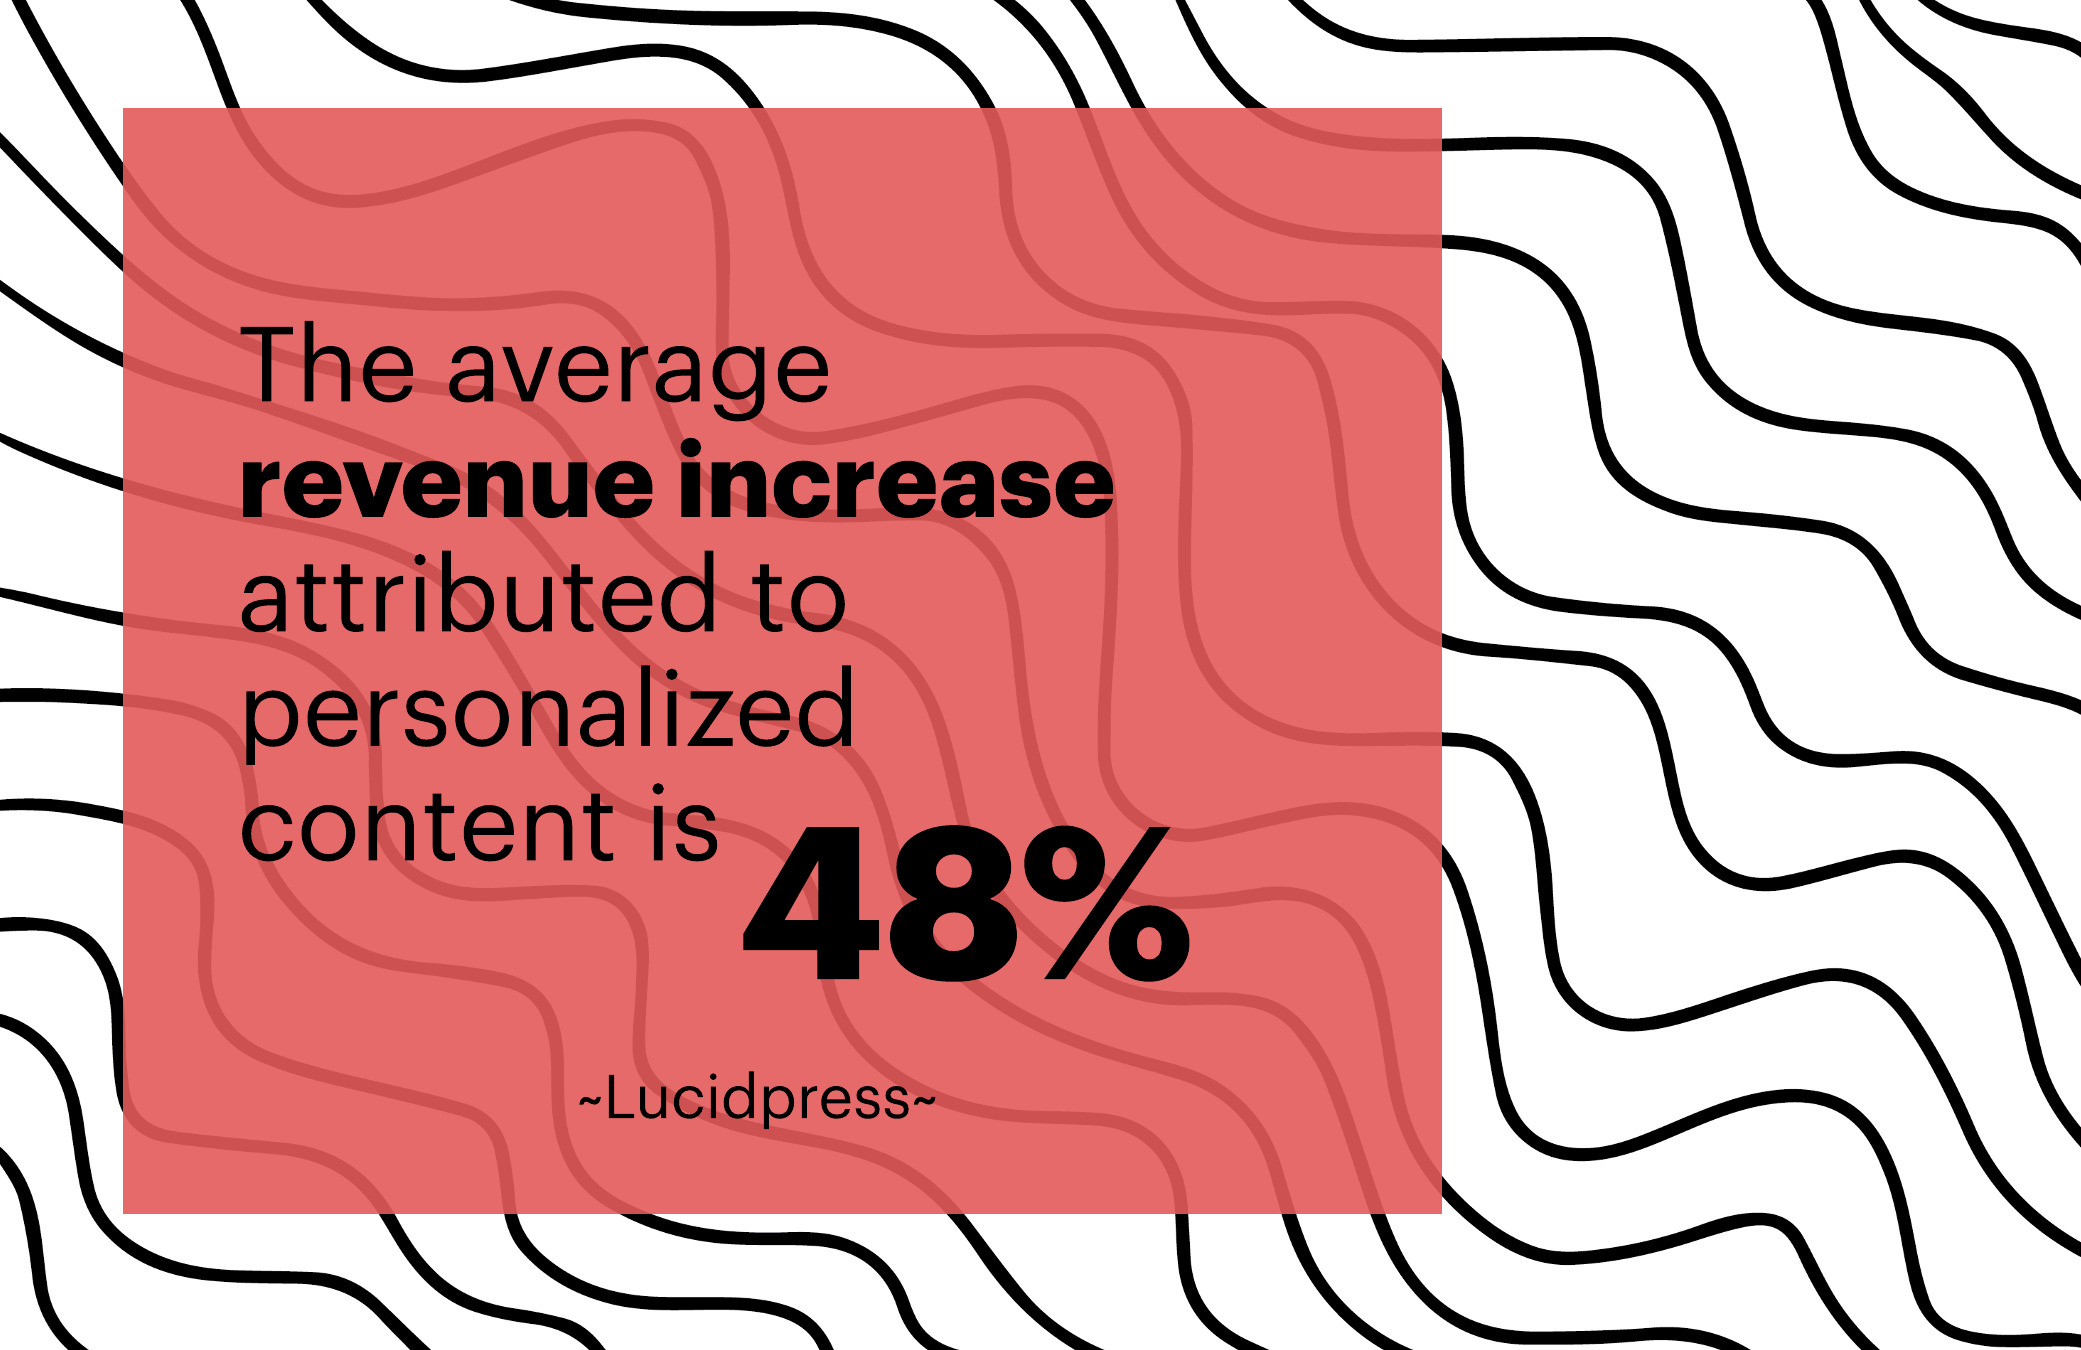 The average revenue increase attributed to personalized content is 48%